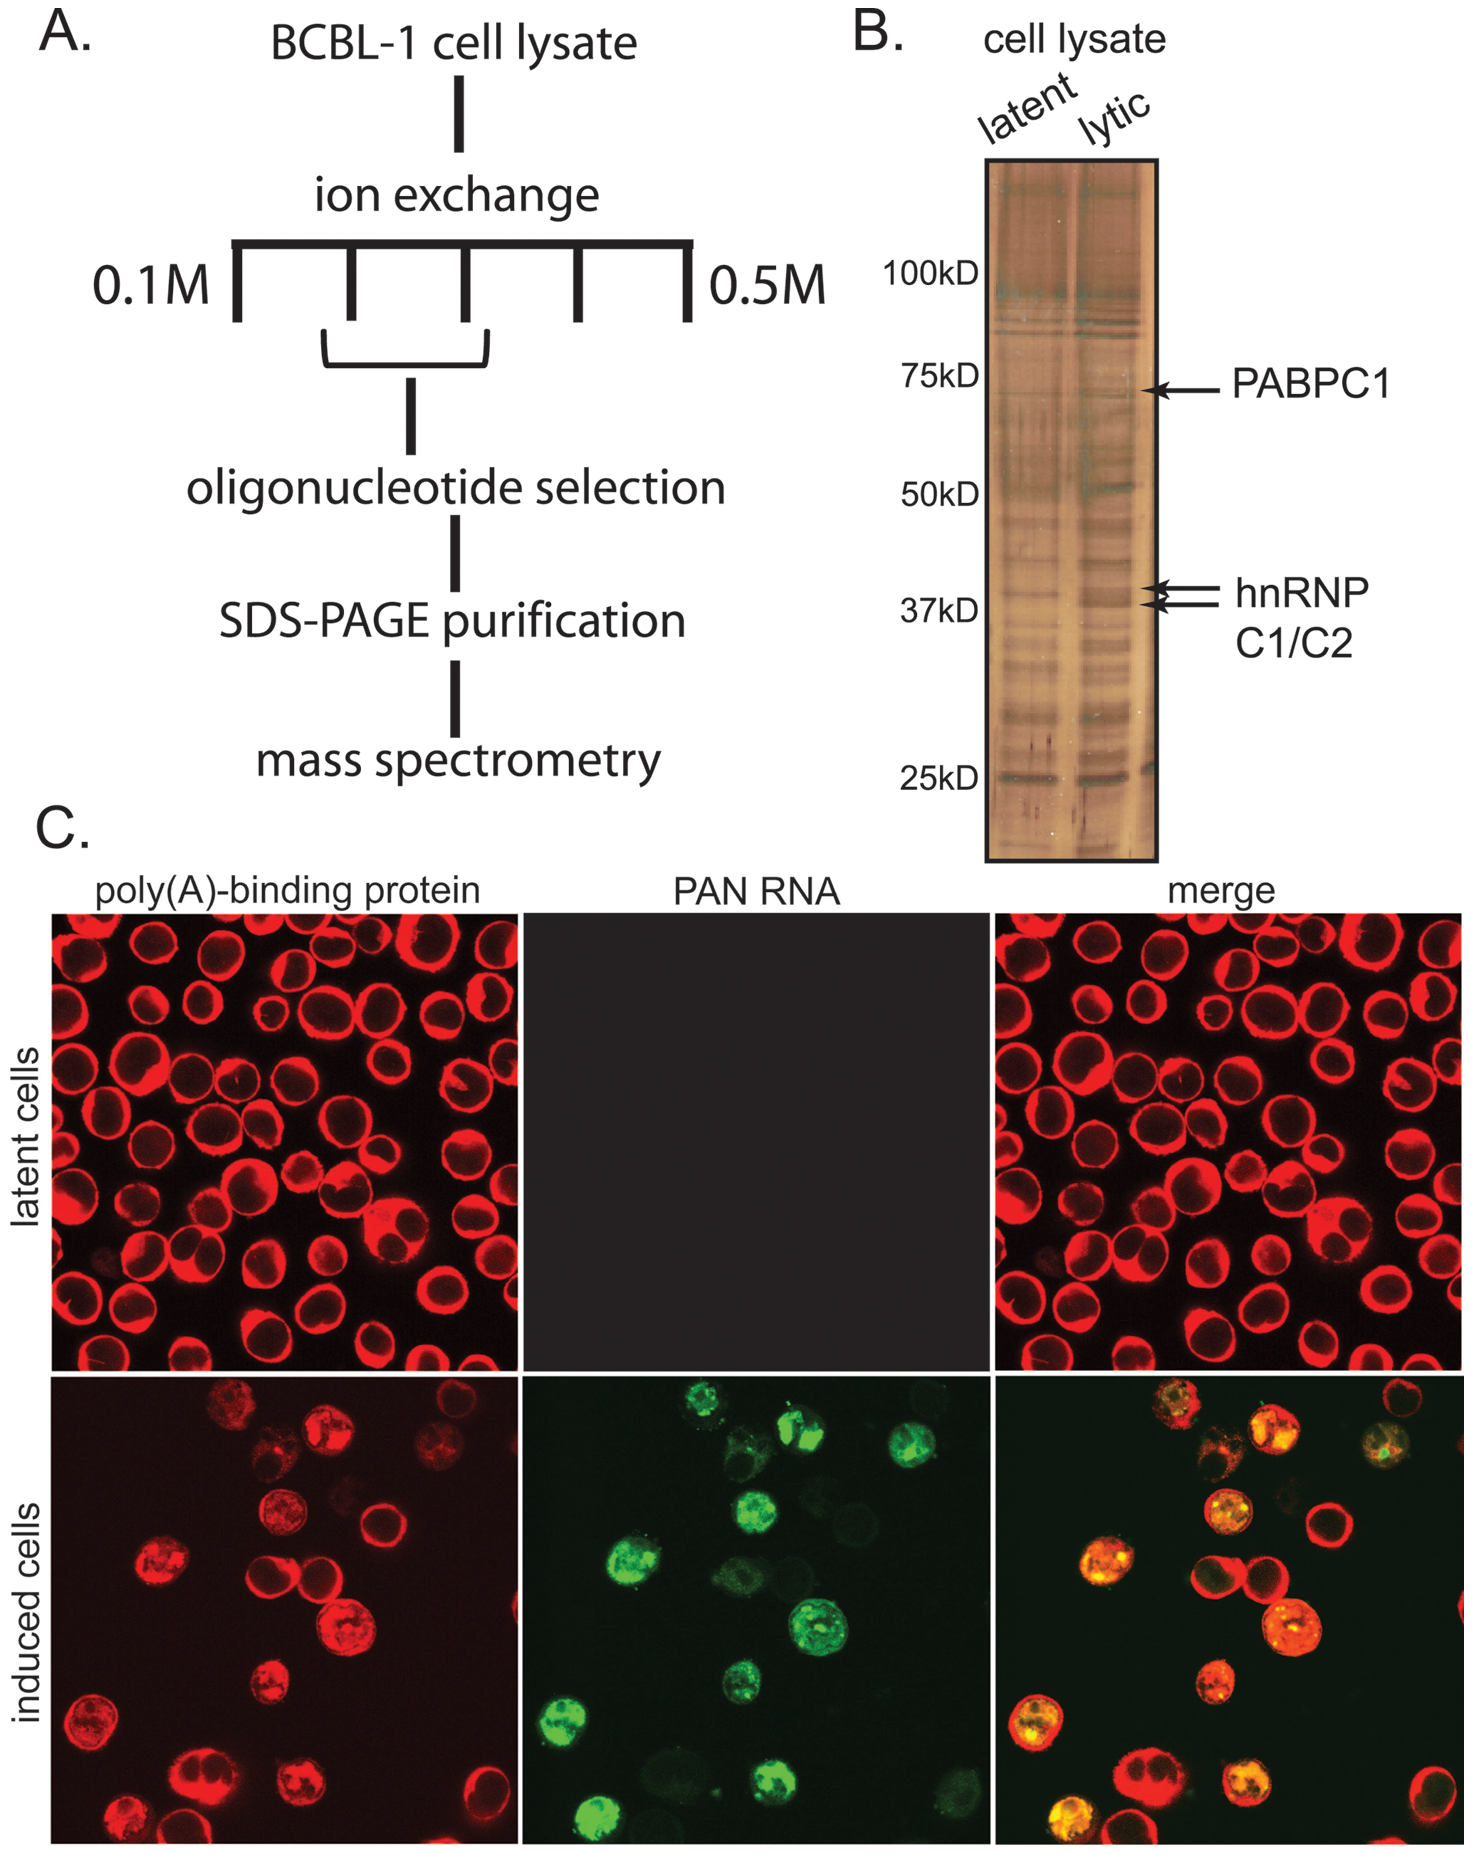 PAN RNA binds to PABPC1 in the nucleus of lytically infected BCBL1 TReX-RTA cells.